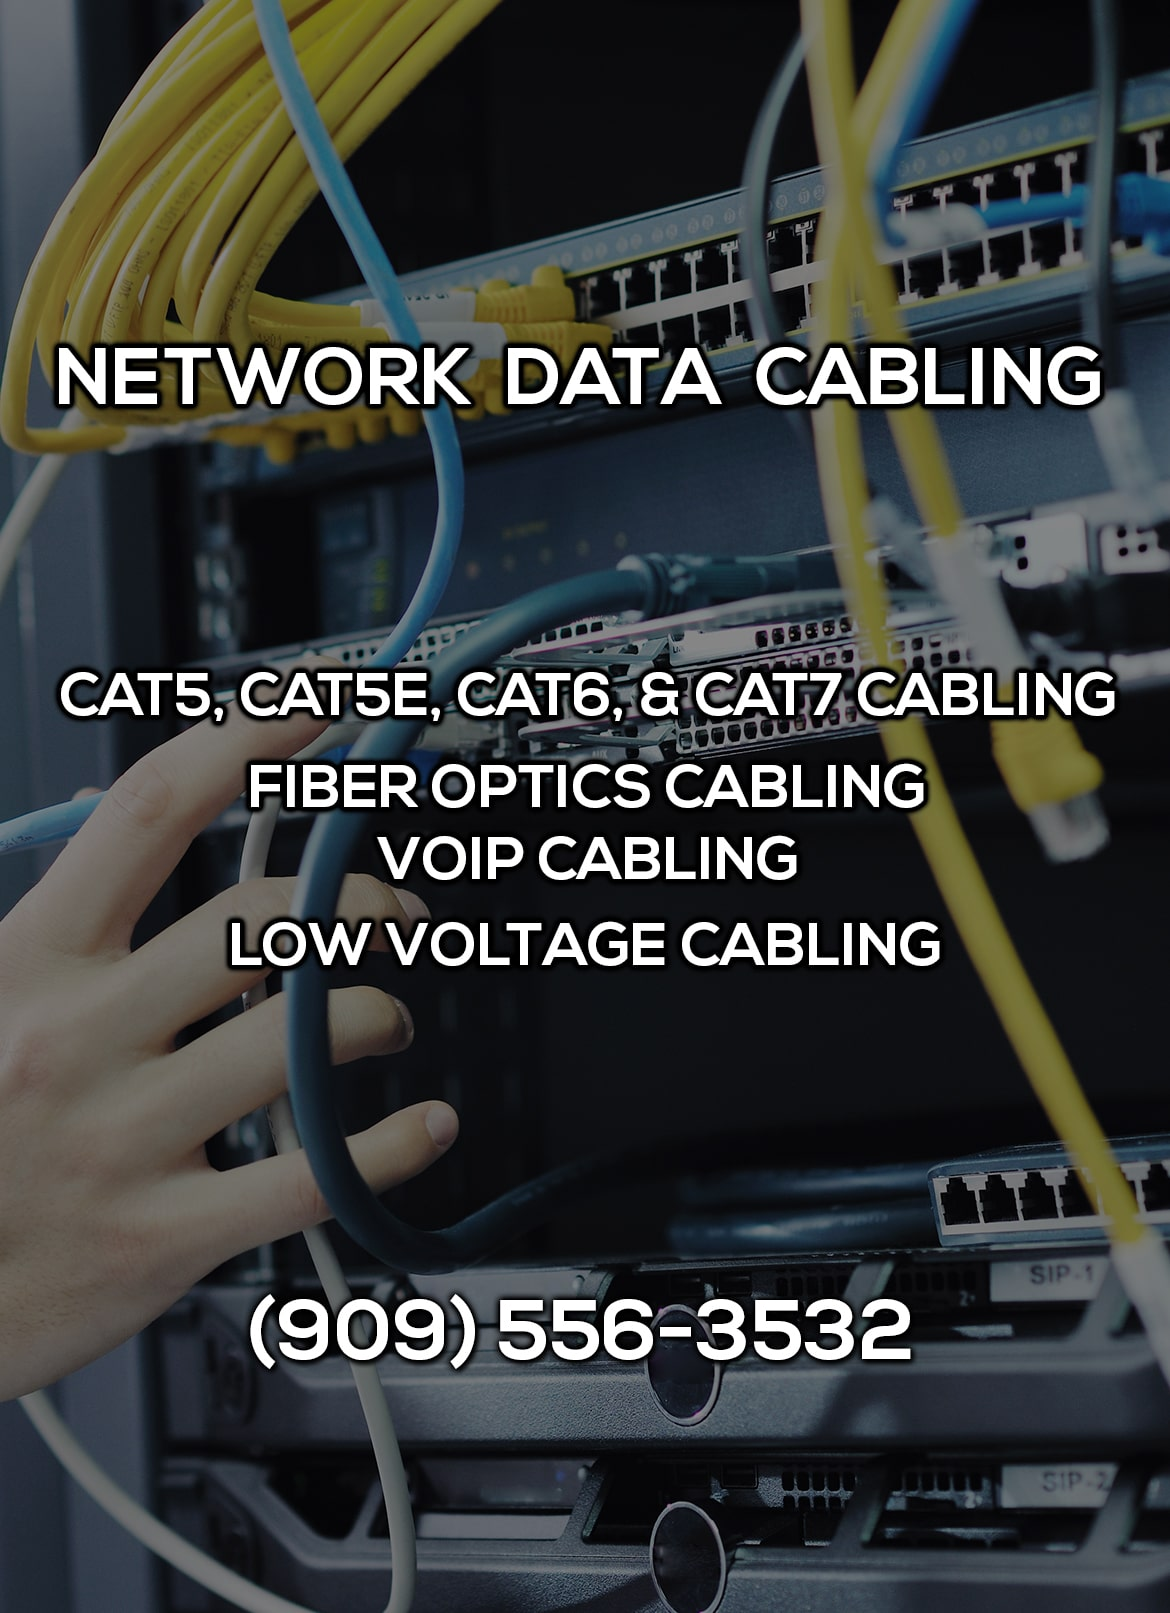 Network Data Cabling in Yucca Valley CA